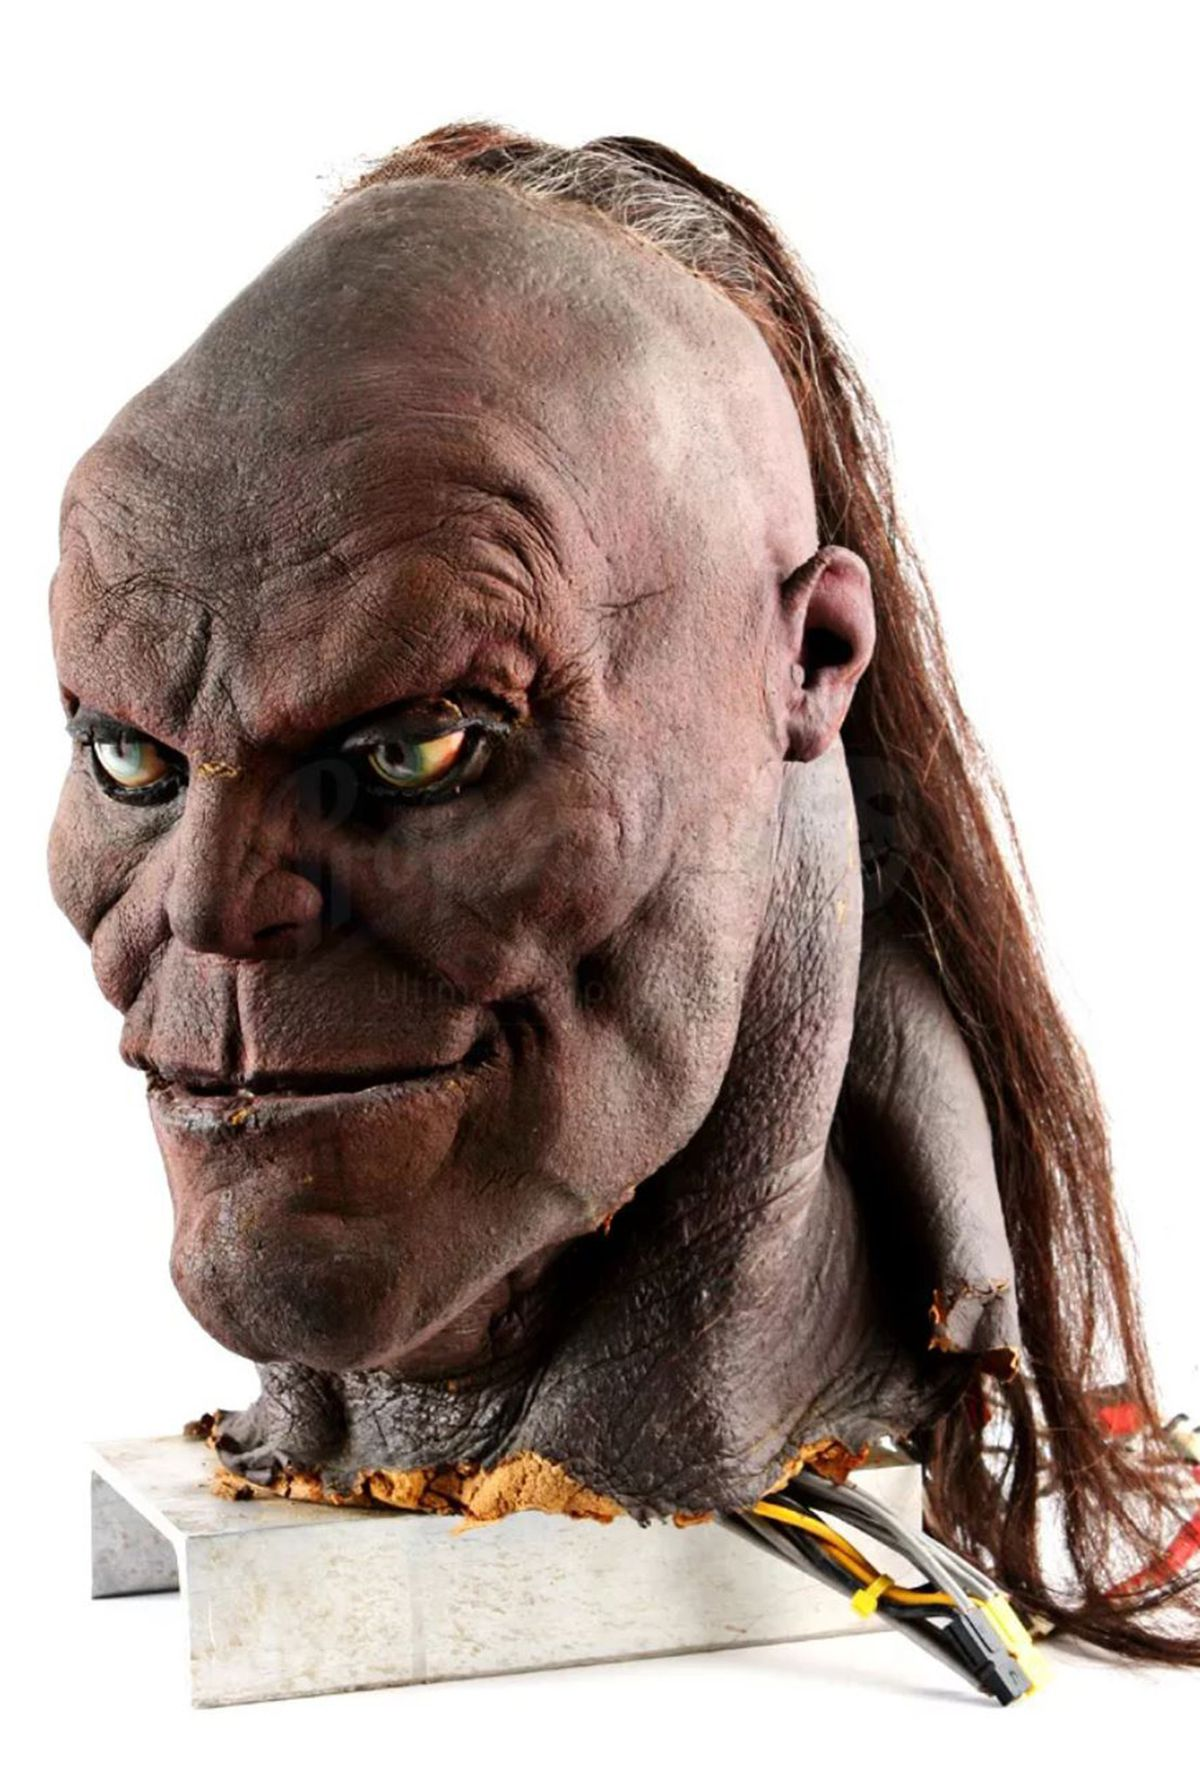 an angle shot of a prop of the head of Goro from Mortal Kombat